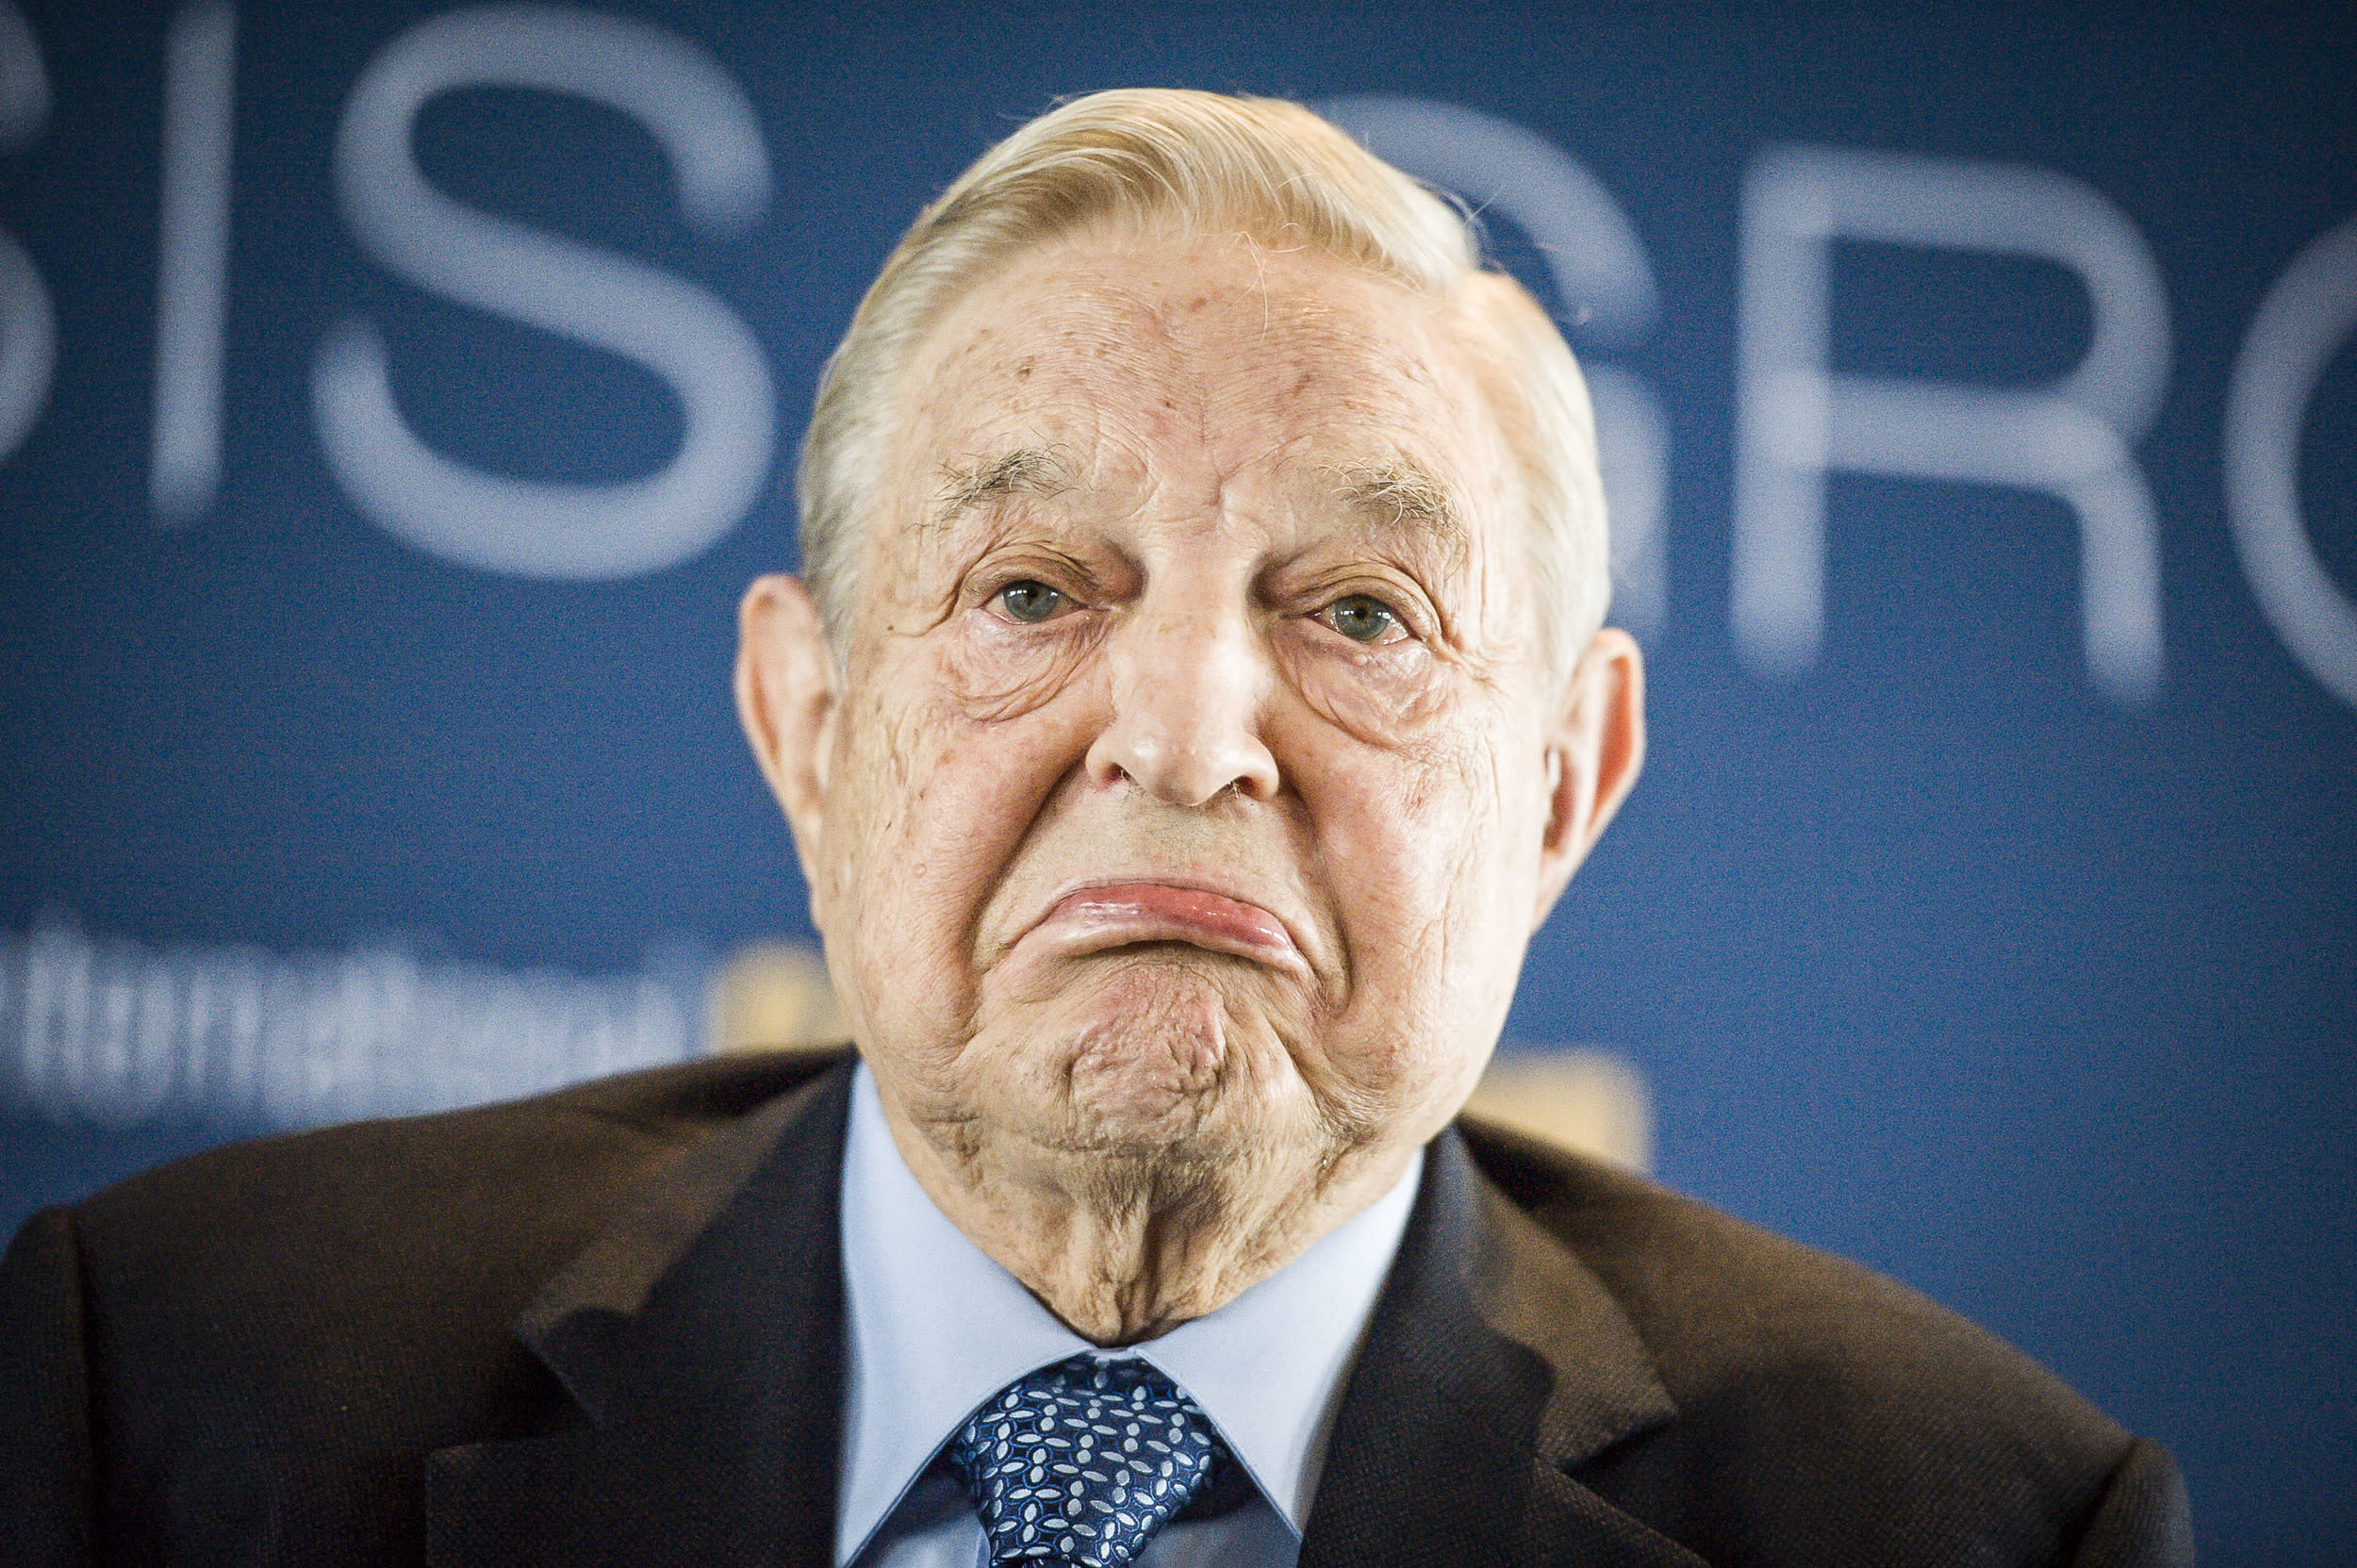 <p>Soros is one of the world's most famous speculators - who sees the market as something to place highly leveraged bets on rather than invest in.</p>  <p>He cemented his reputation by shorting the pound on Black Wednesday in 1992, and making $1 billion from the collapse of the British currency and the near-collapse of the Bank of England.</p>  <p>He is another noted philanthropist, giving primarily to human rights, public health and education charities.</p>